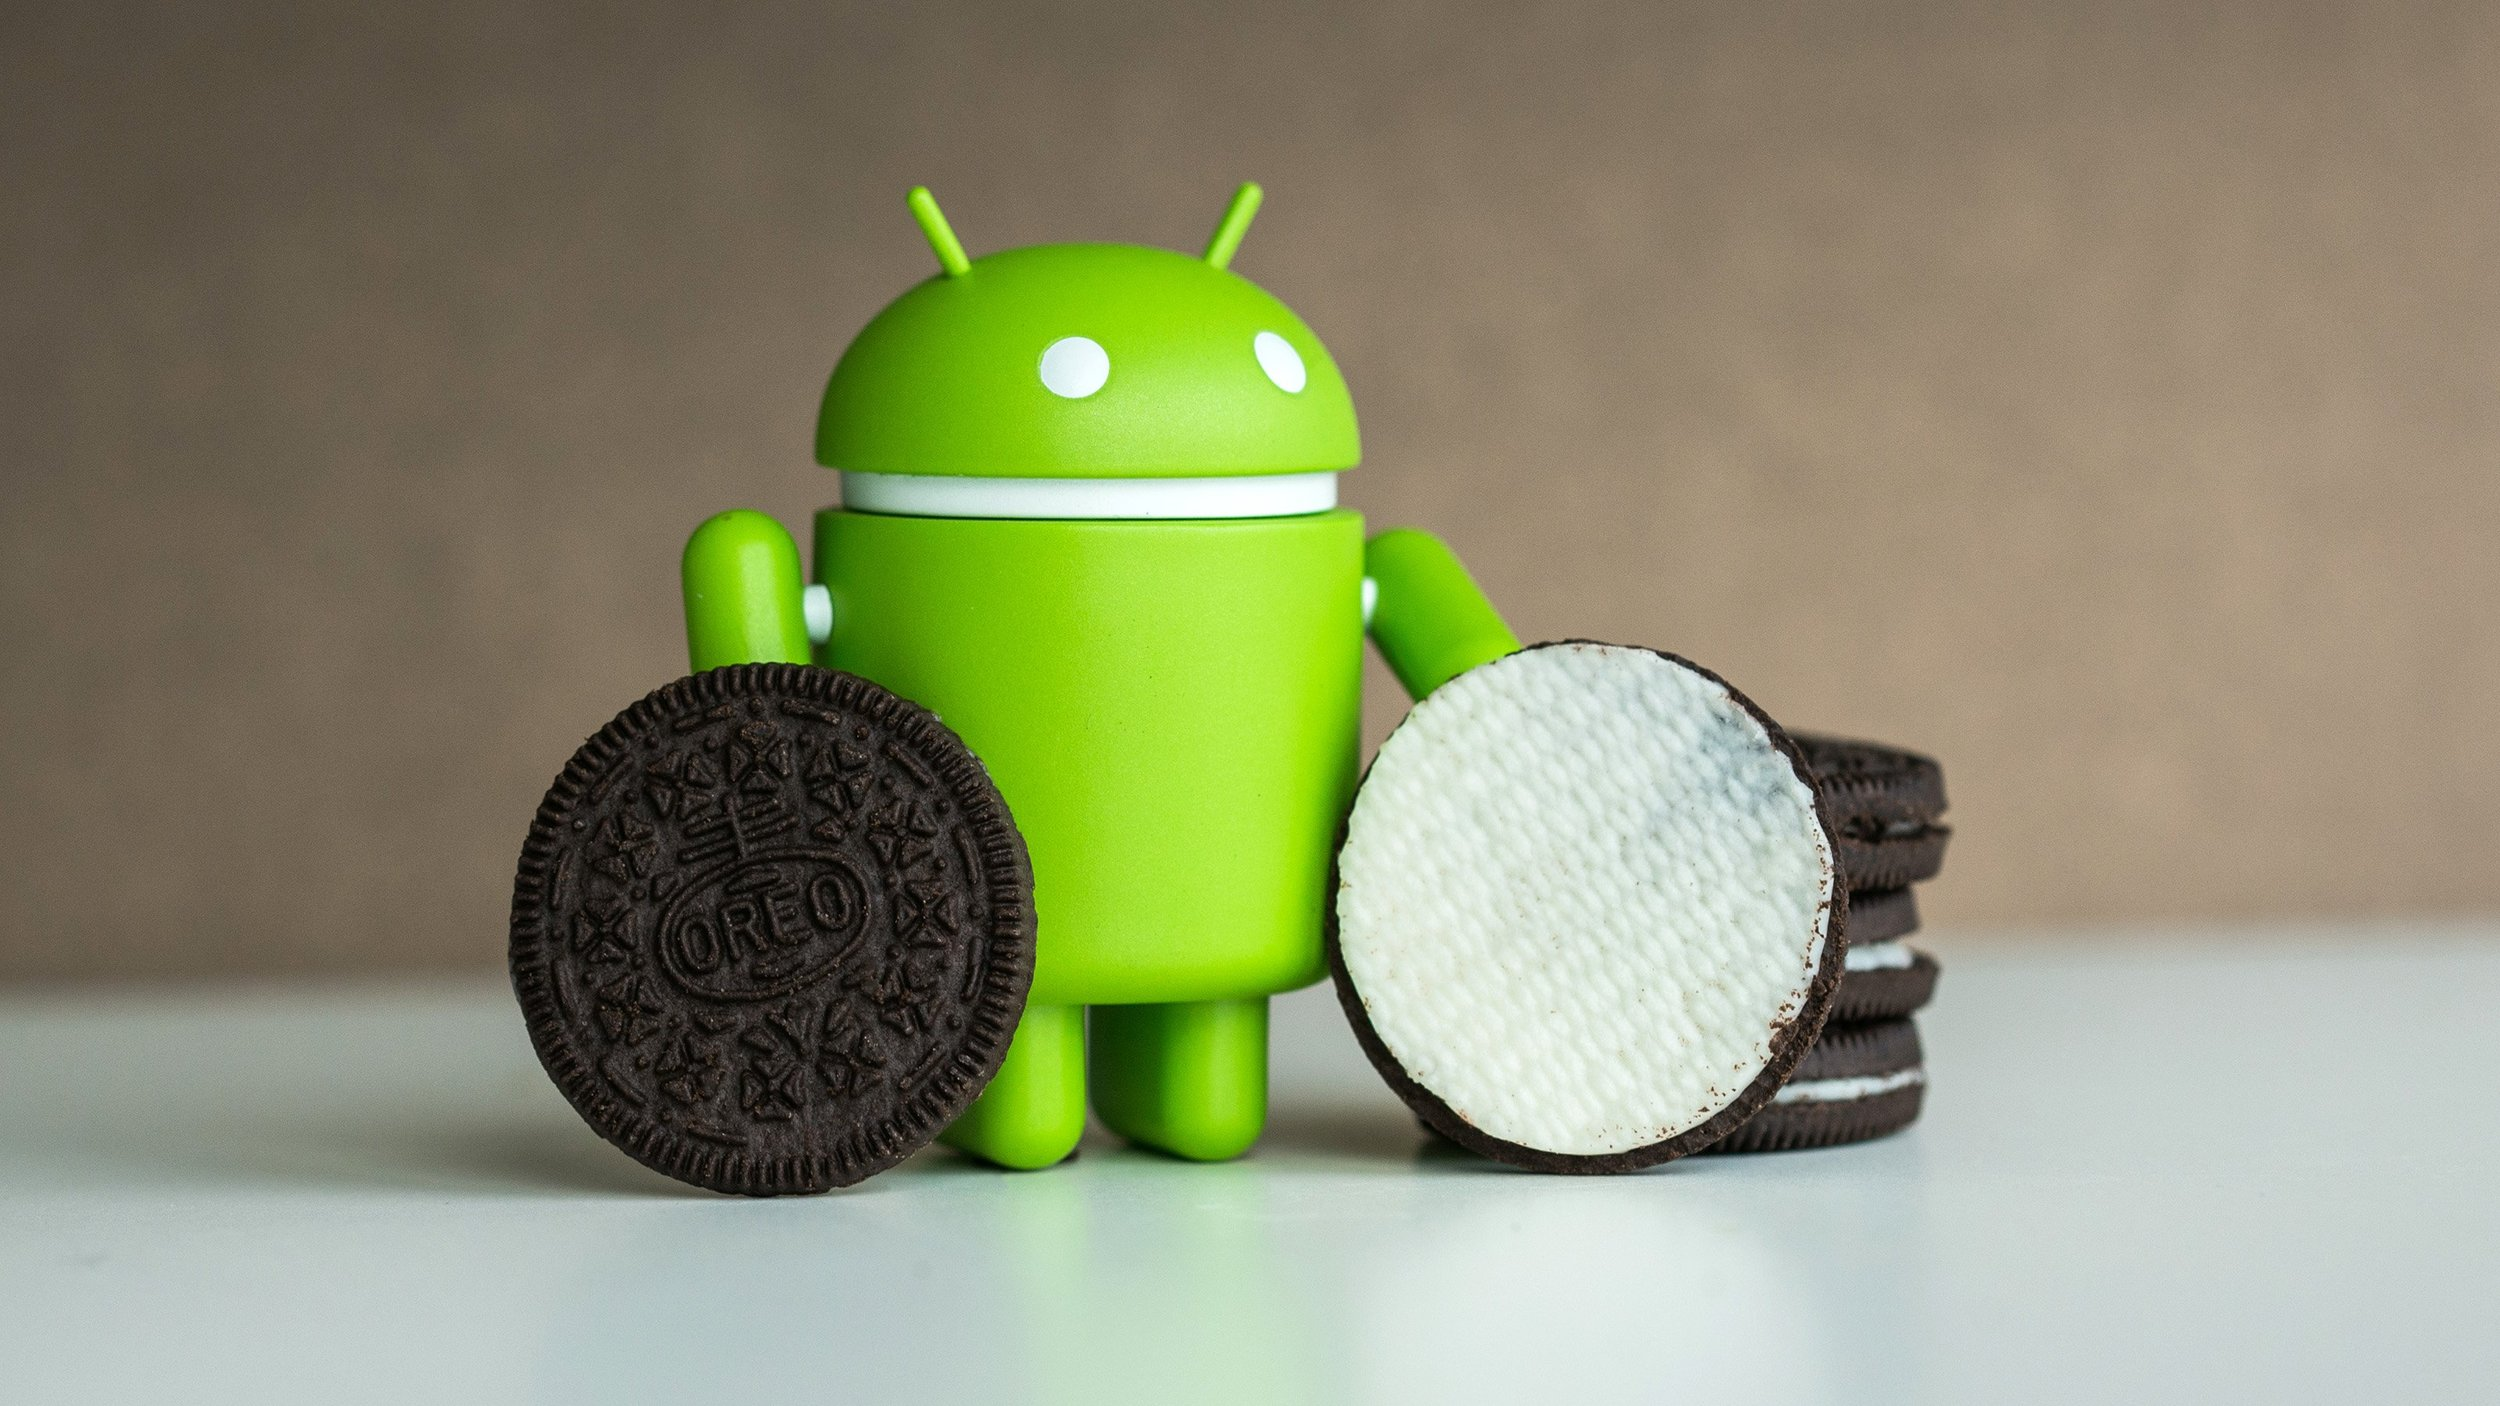 AndroidPIT-android-O-Oreo-2065.jpg